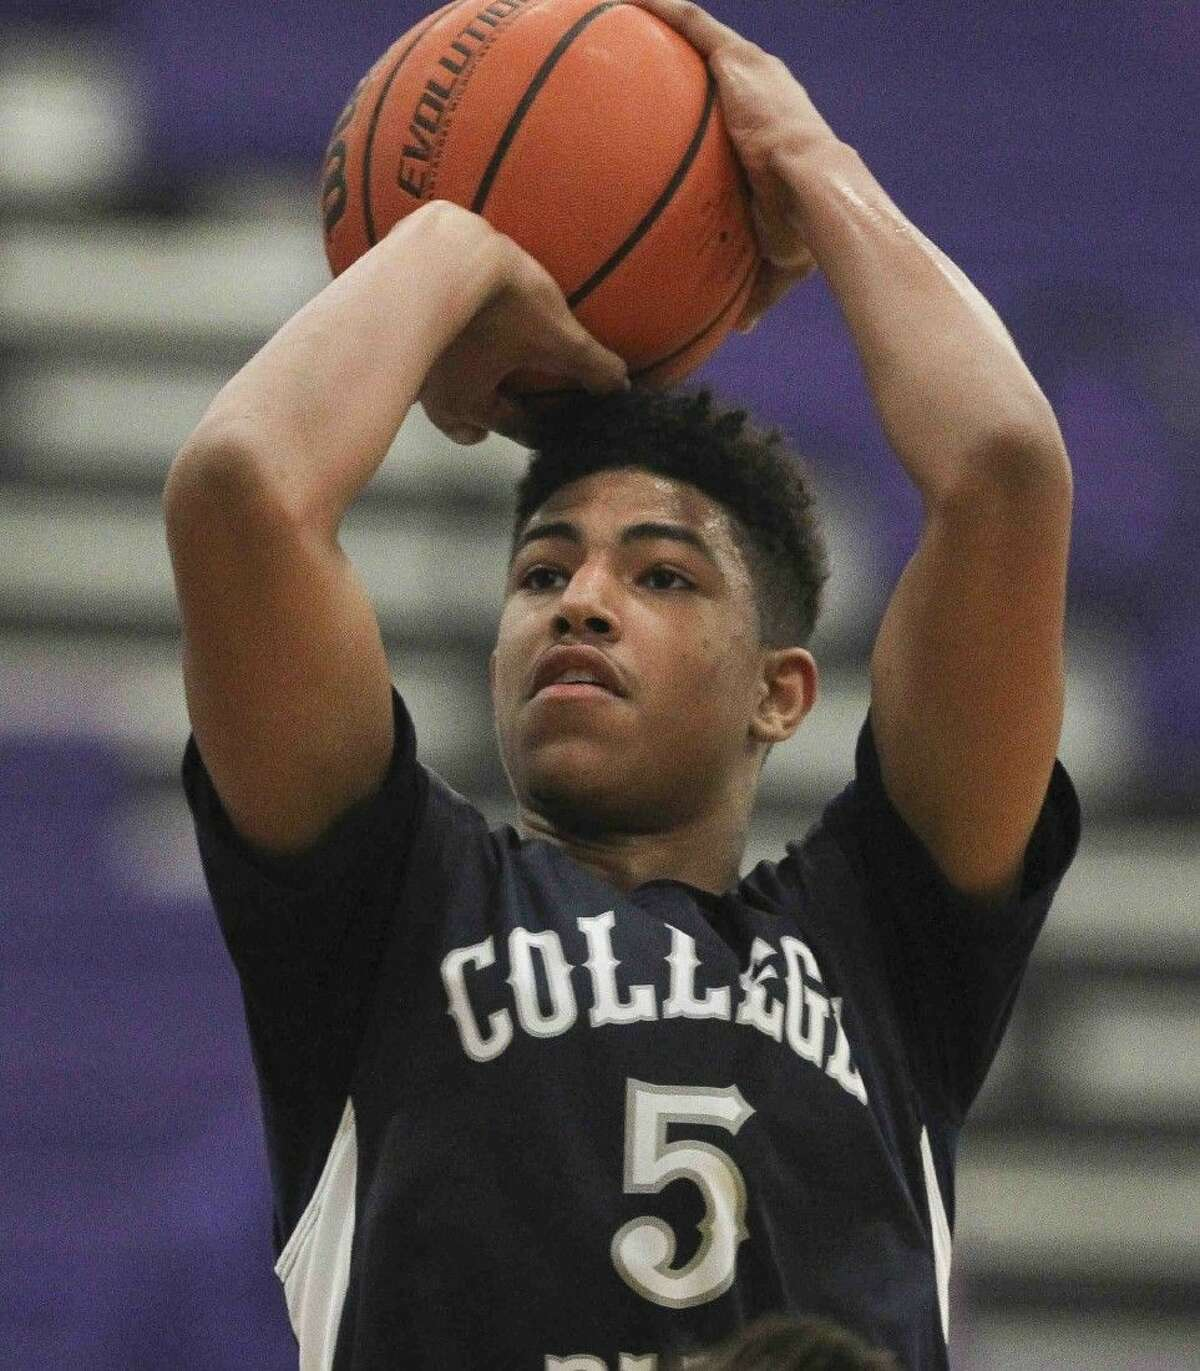 College Park sophomore Quentin Grimes was a first-team selection for the Cavs.